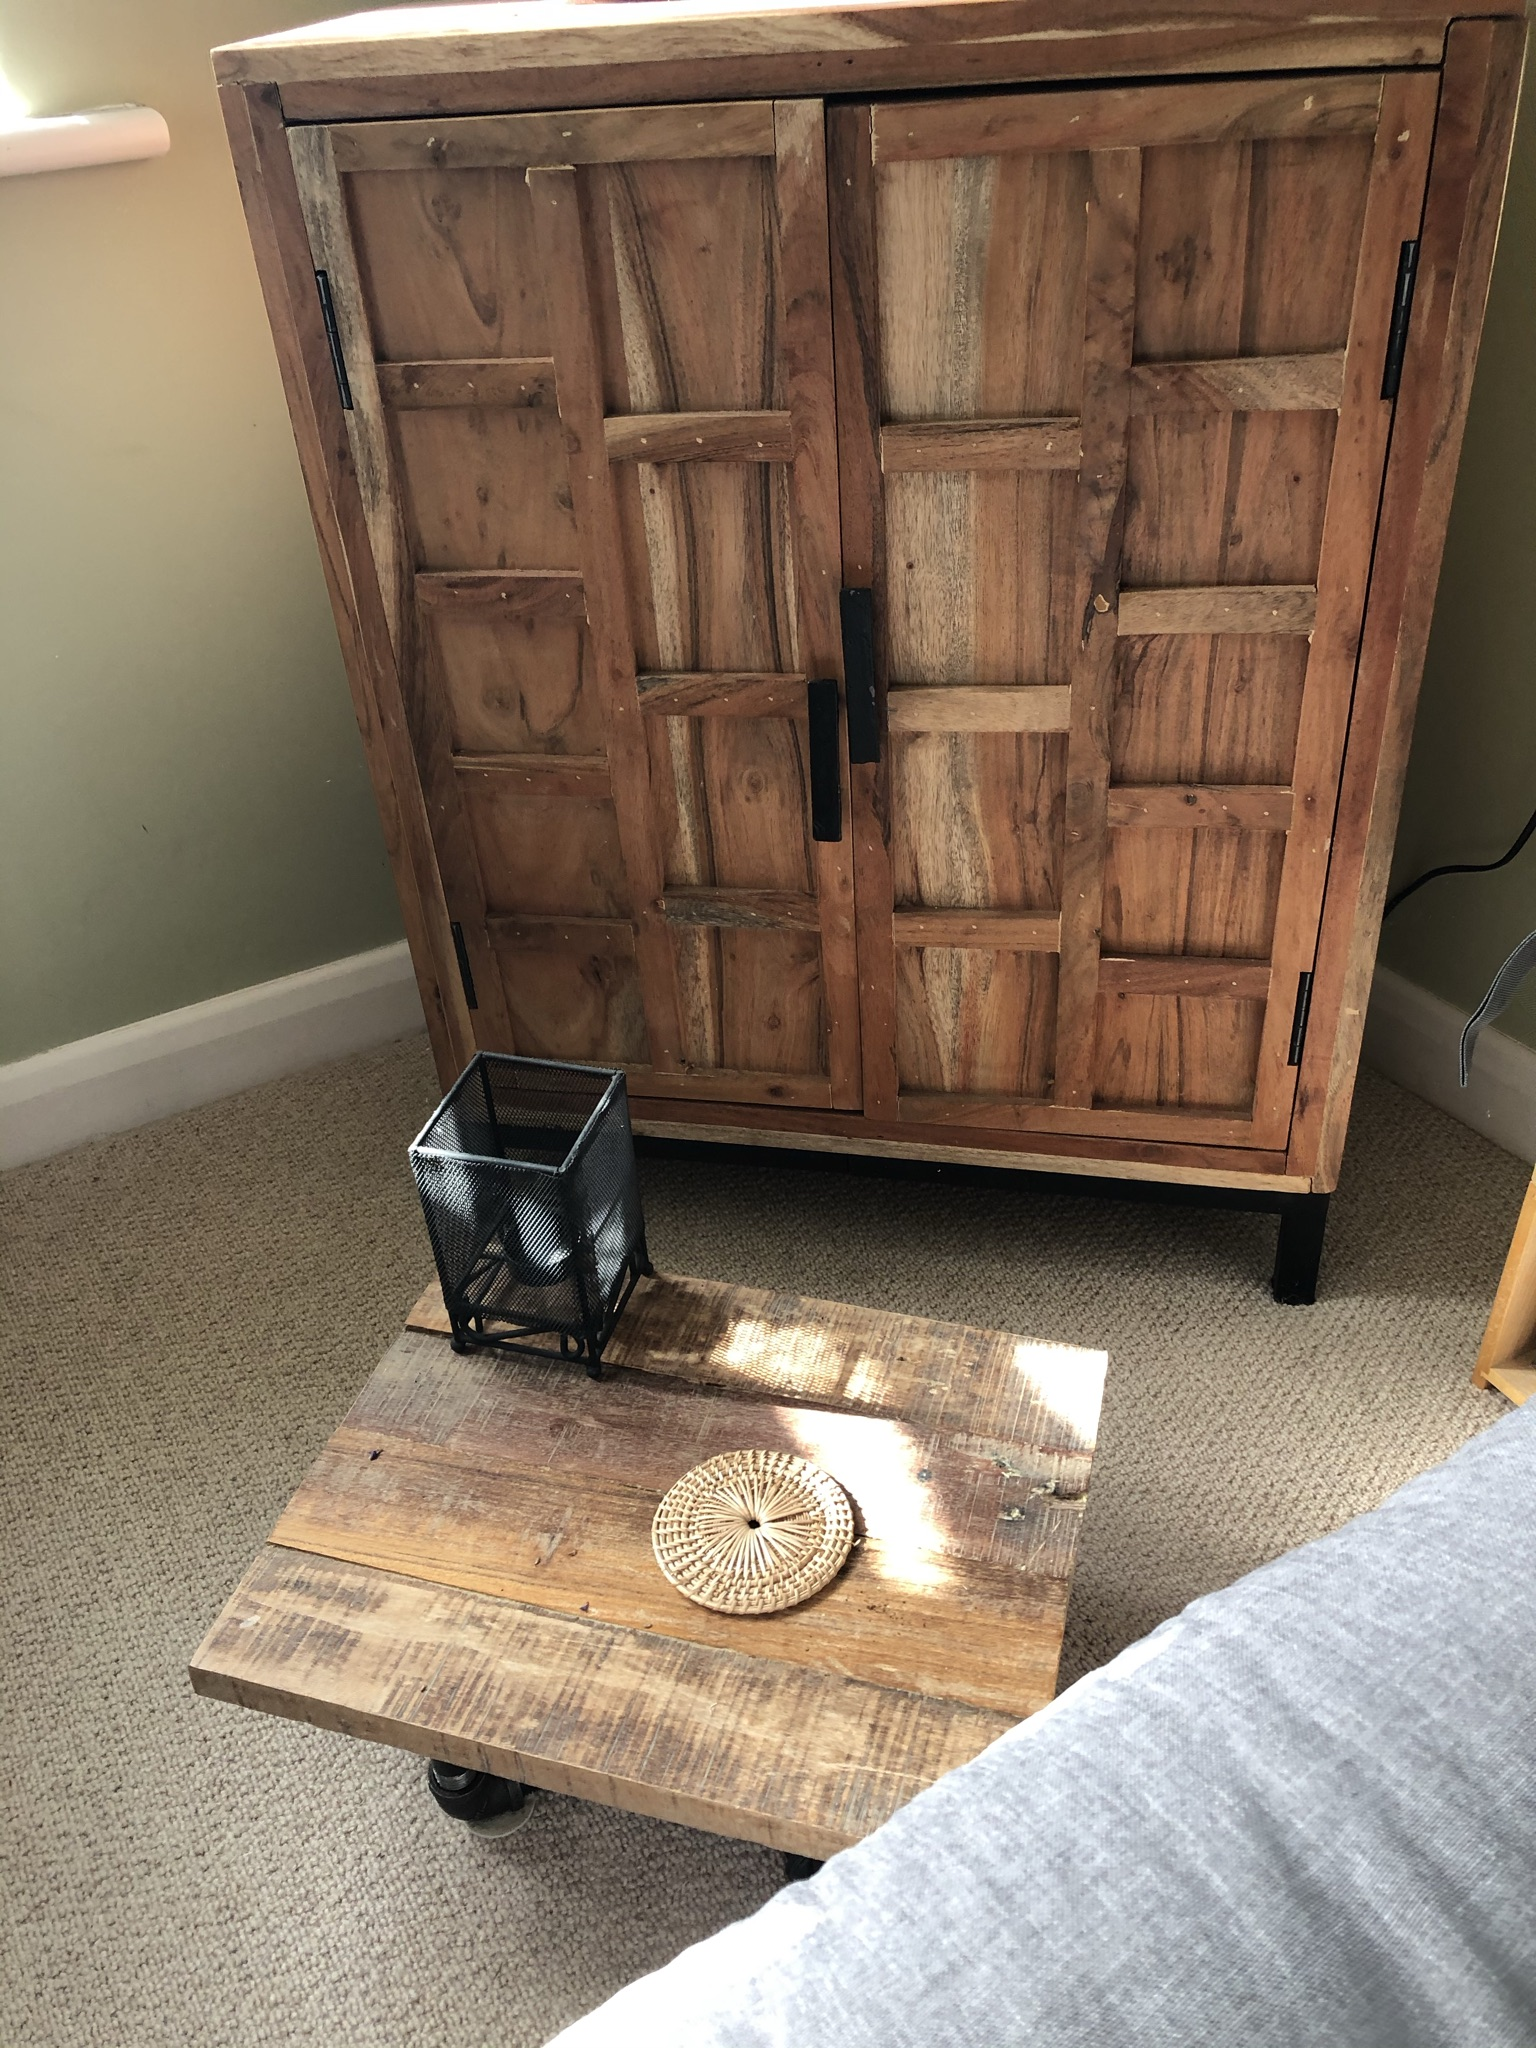 Reclaimed hardwood and pipe side tables (www.coolupcycled.com)